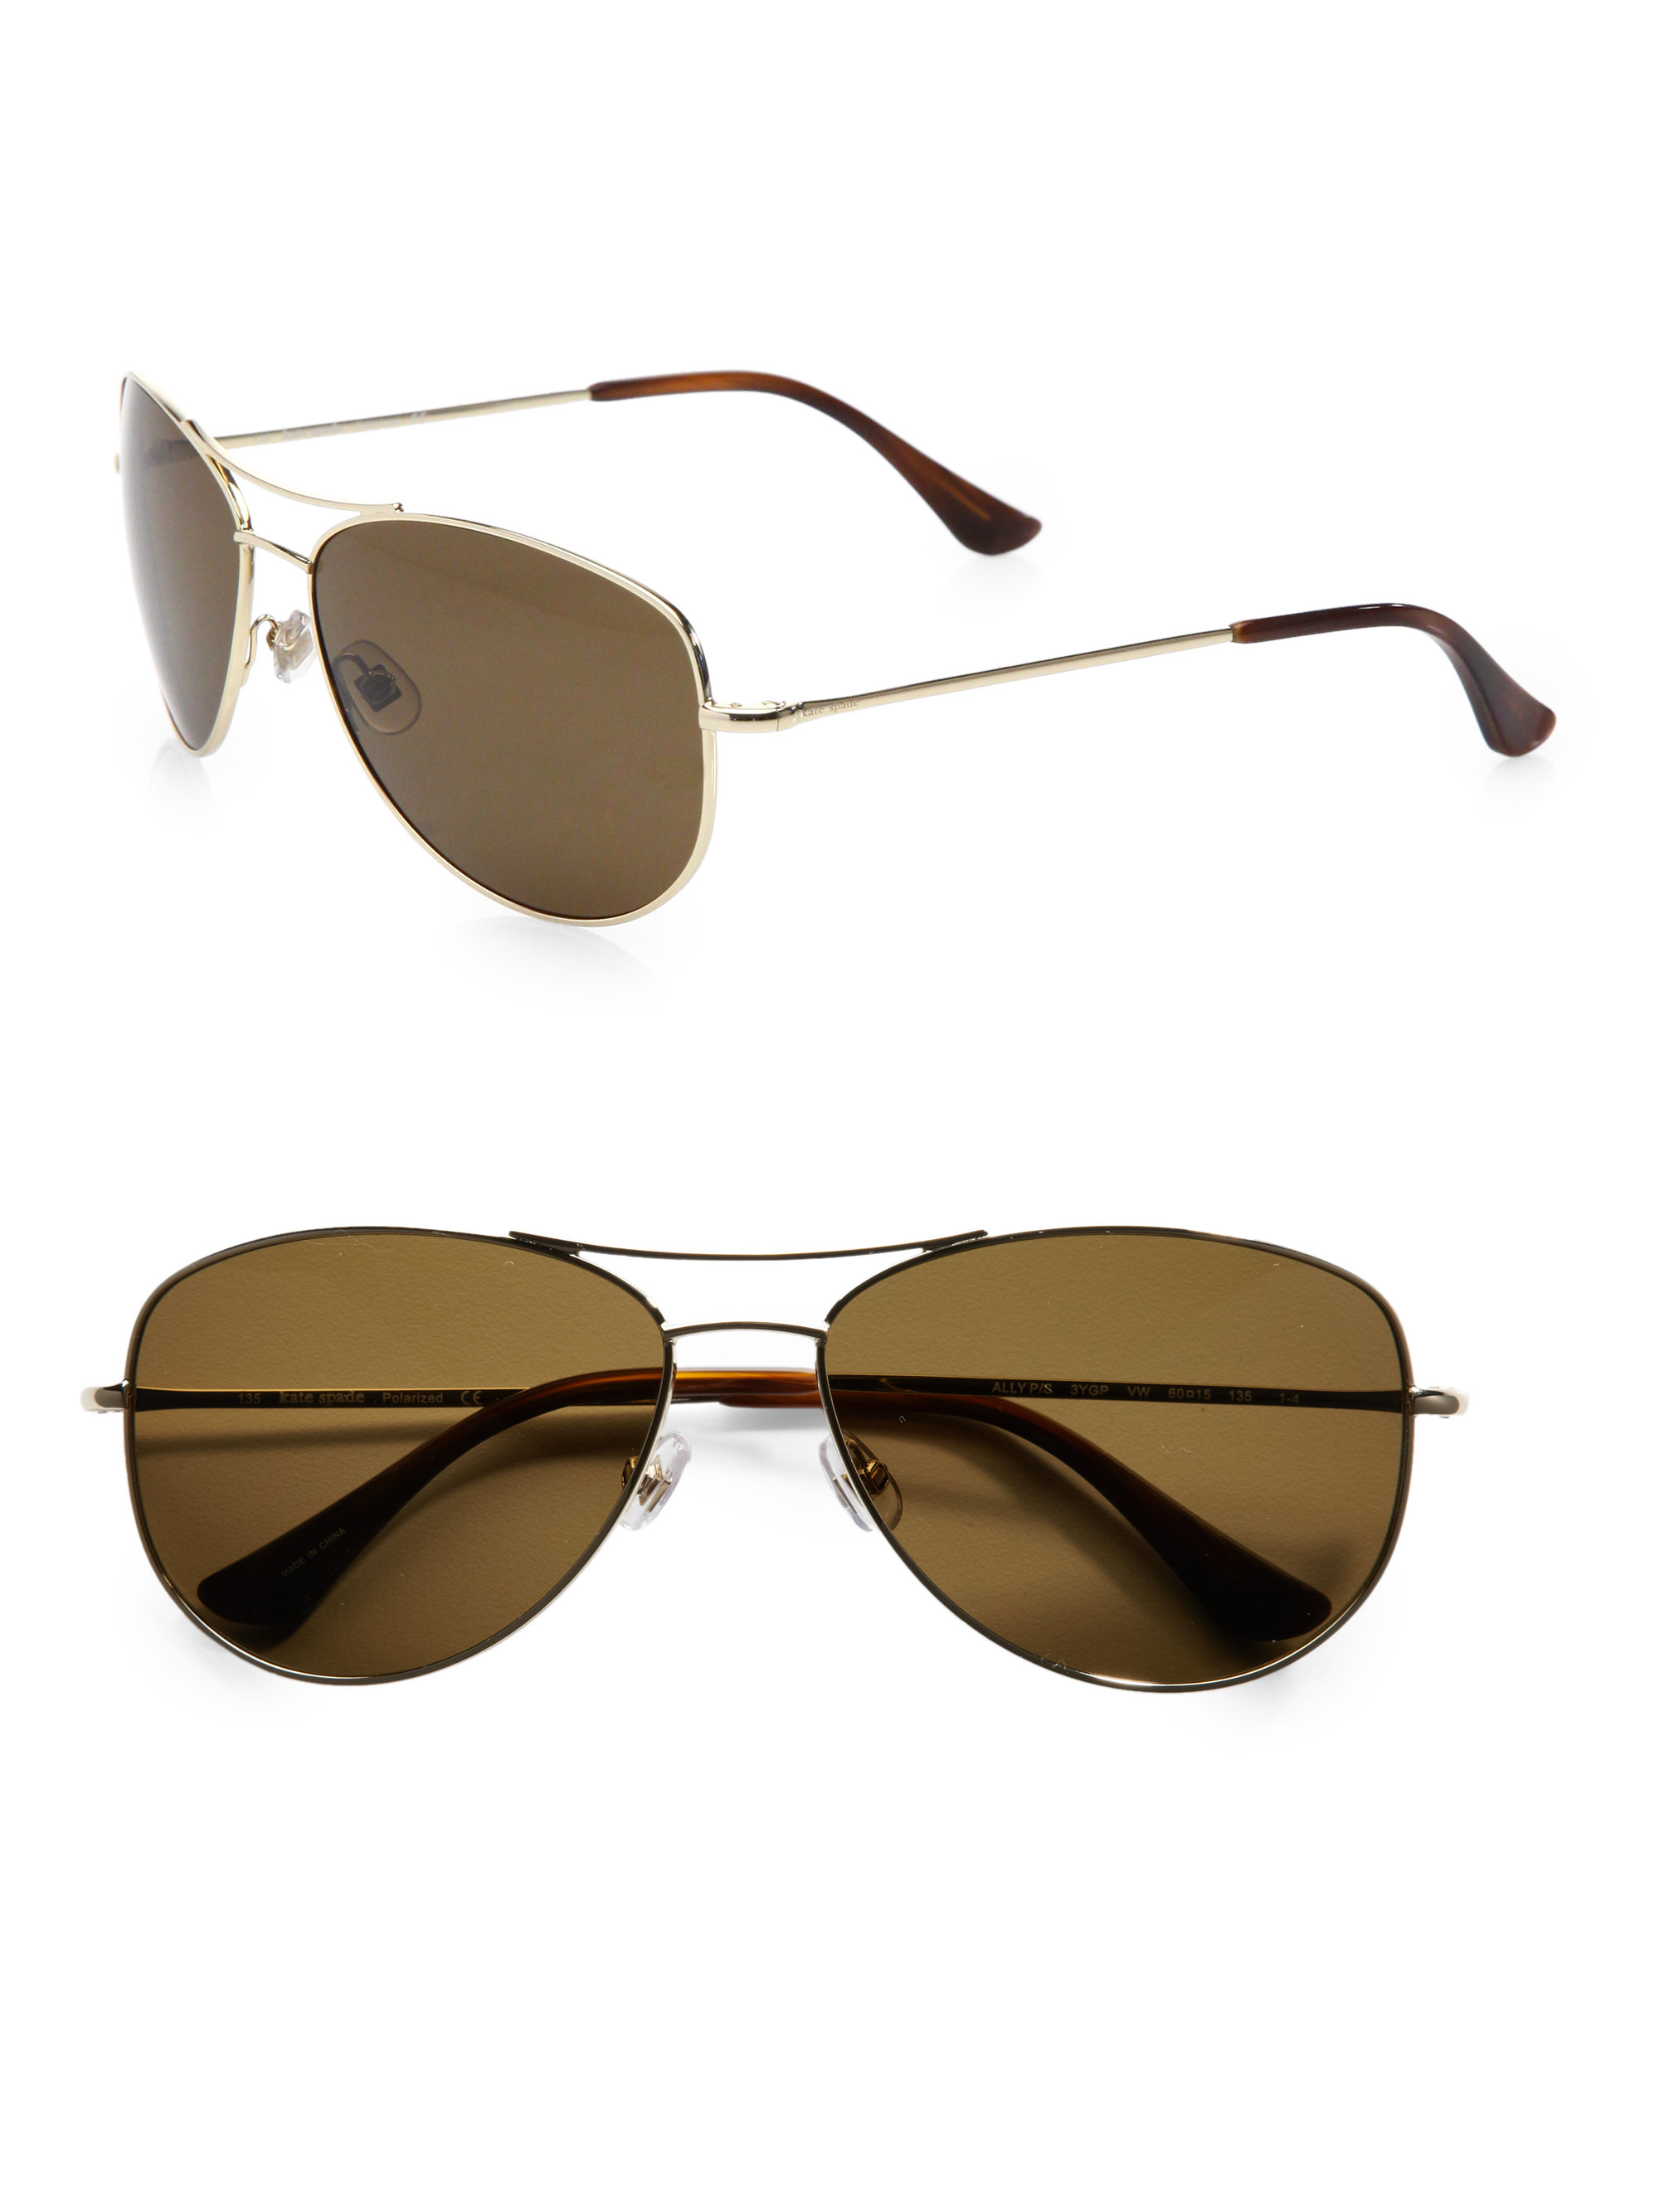 0f6c36022a Lyst - Kate spade new york Ally Polarized Metal Aviator Sunglasses in Brown